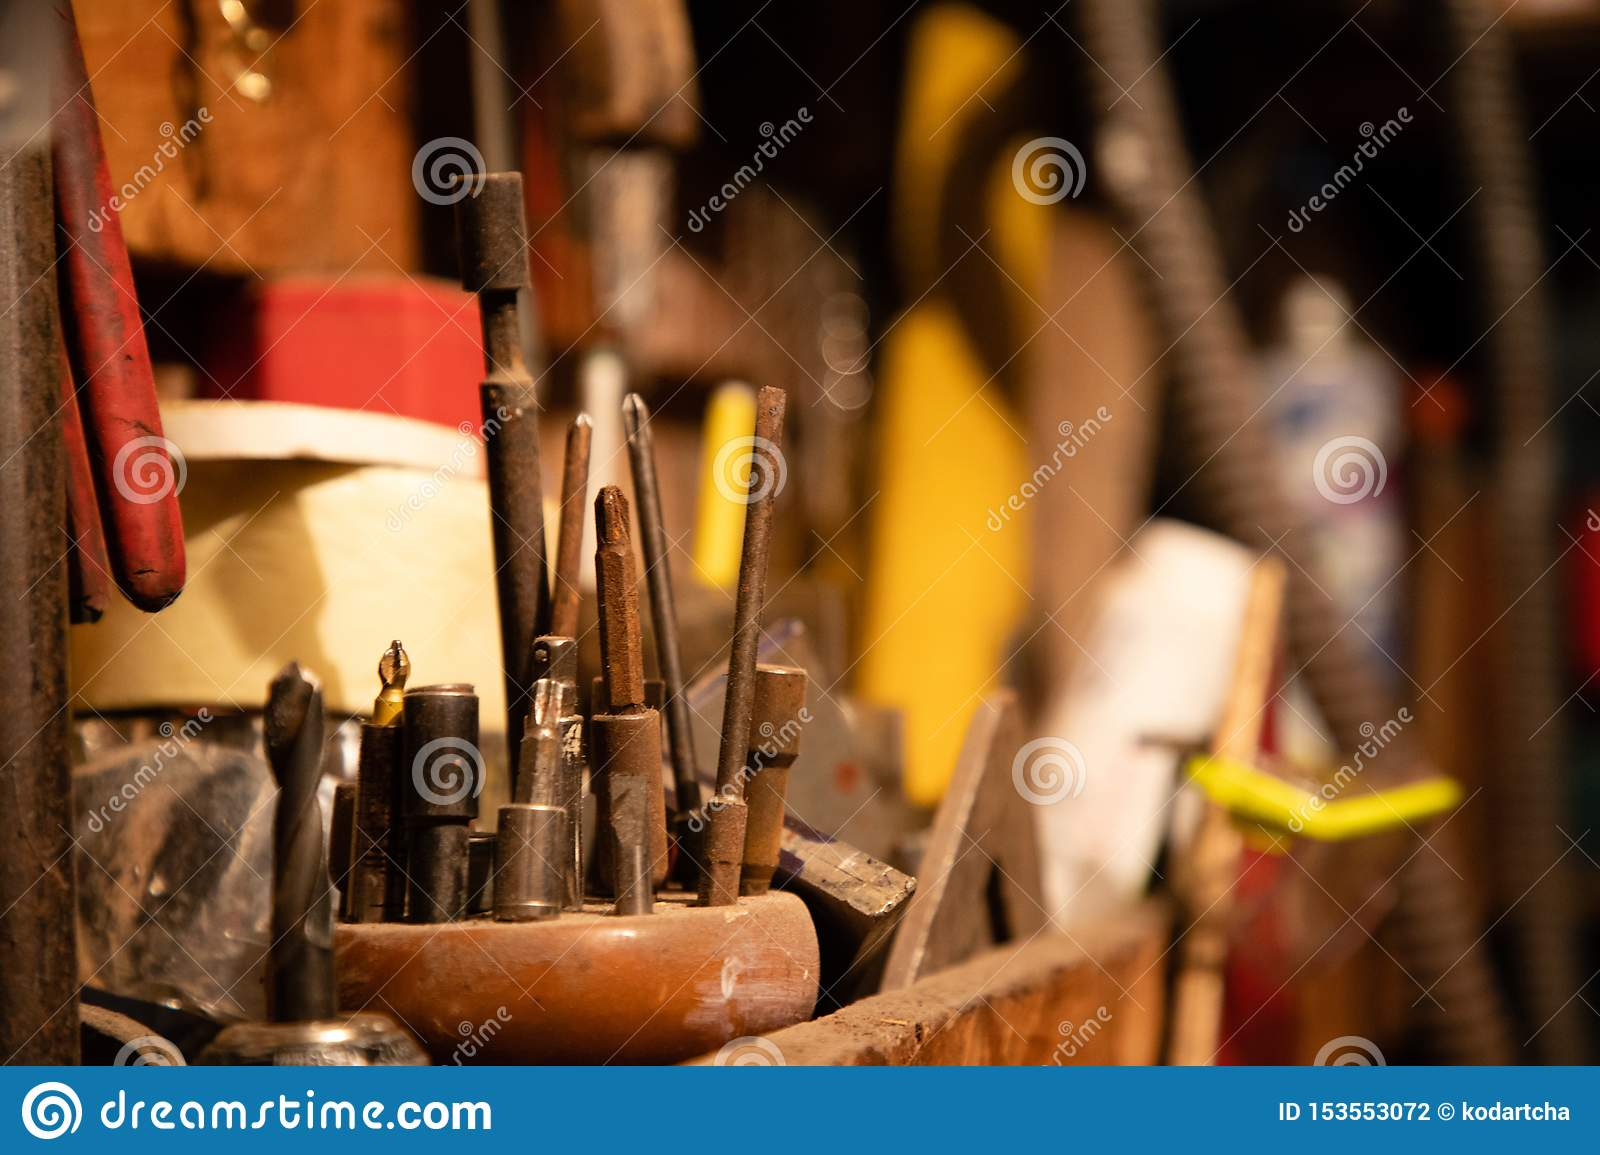 Different screwdrivers and other tools on garage